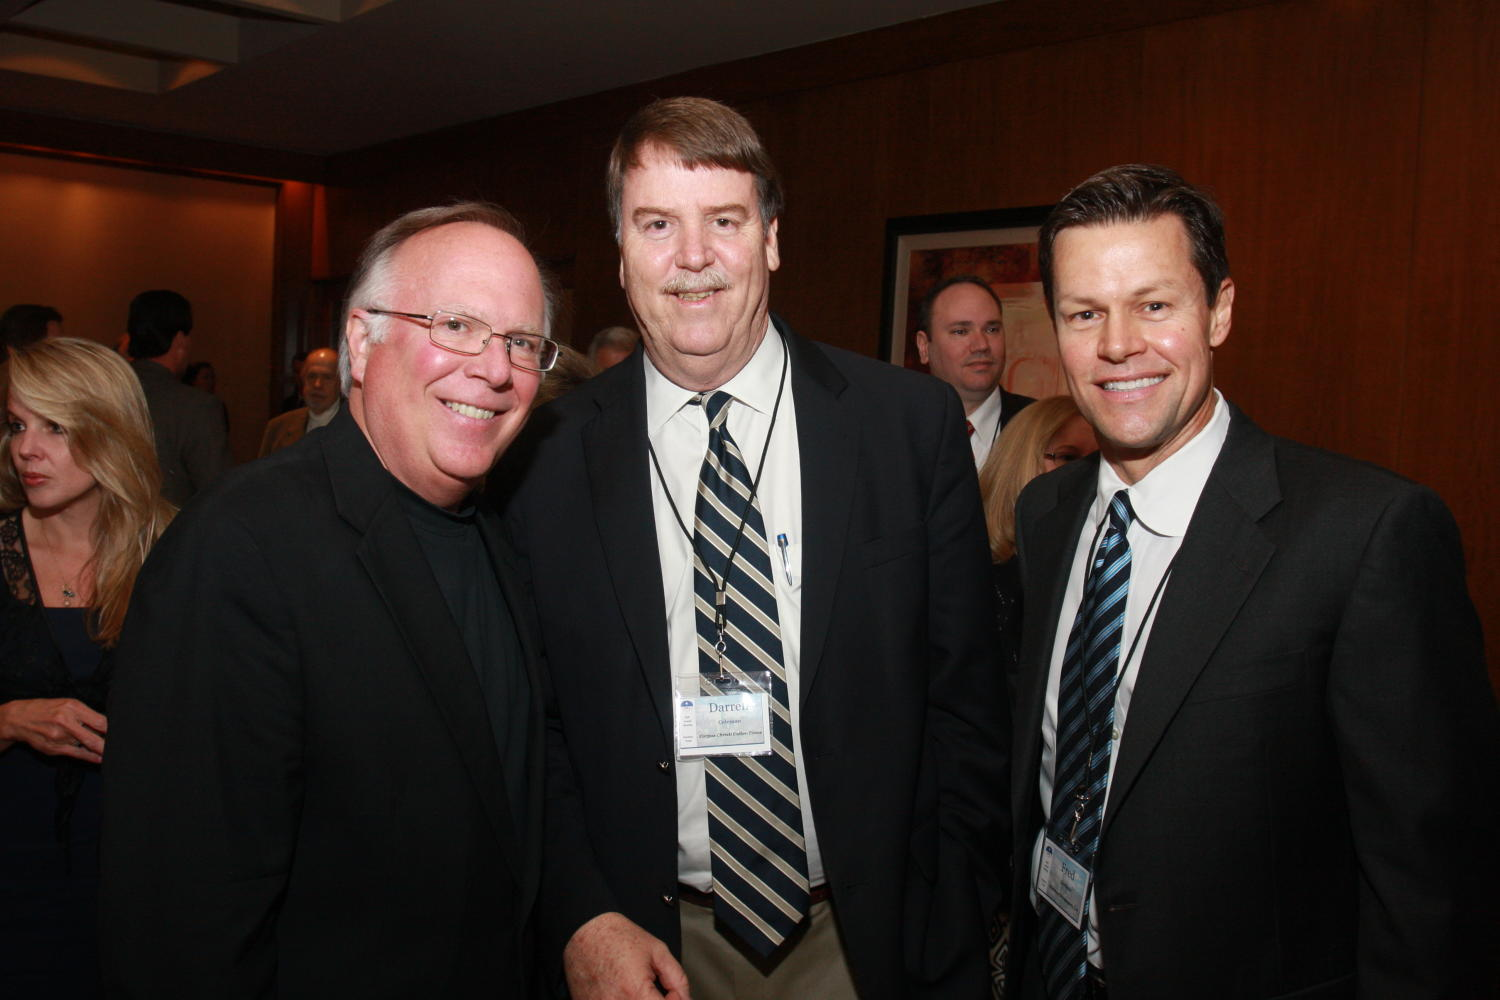 [Darrell Coleman and Fred K. Hartman], Photograph of three men, two identified as Darrell Coleman (center) and Fred K. Hartman (right) seen standing shoulder to shoulder, smiling, and posing for pictures during the 2010 Texas Daily Newspaper Association annual meeting held in Houston, Texas.,